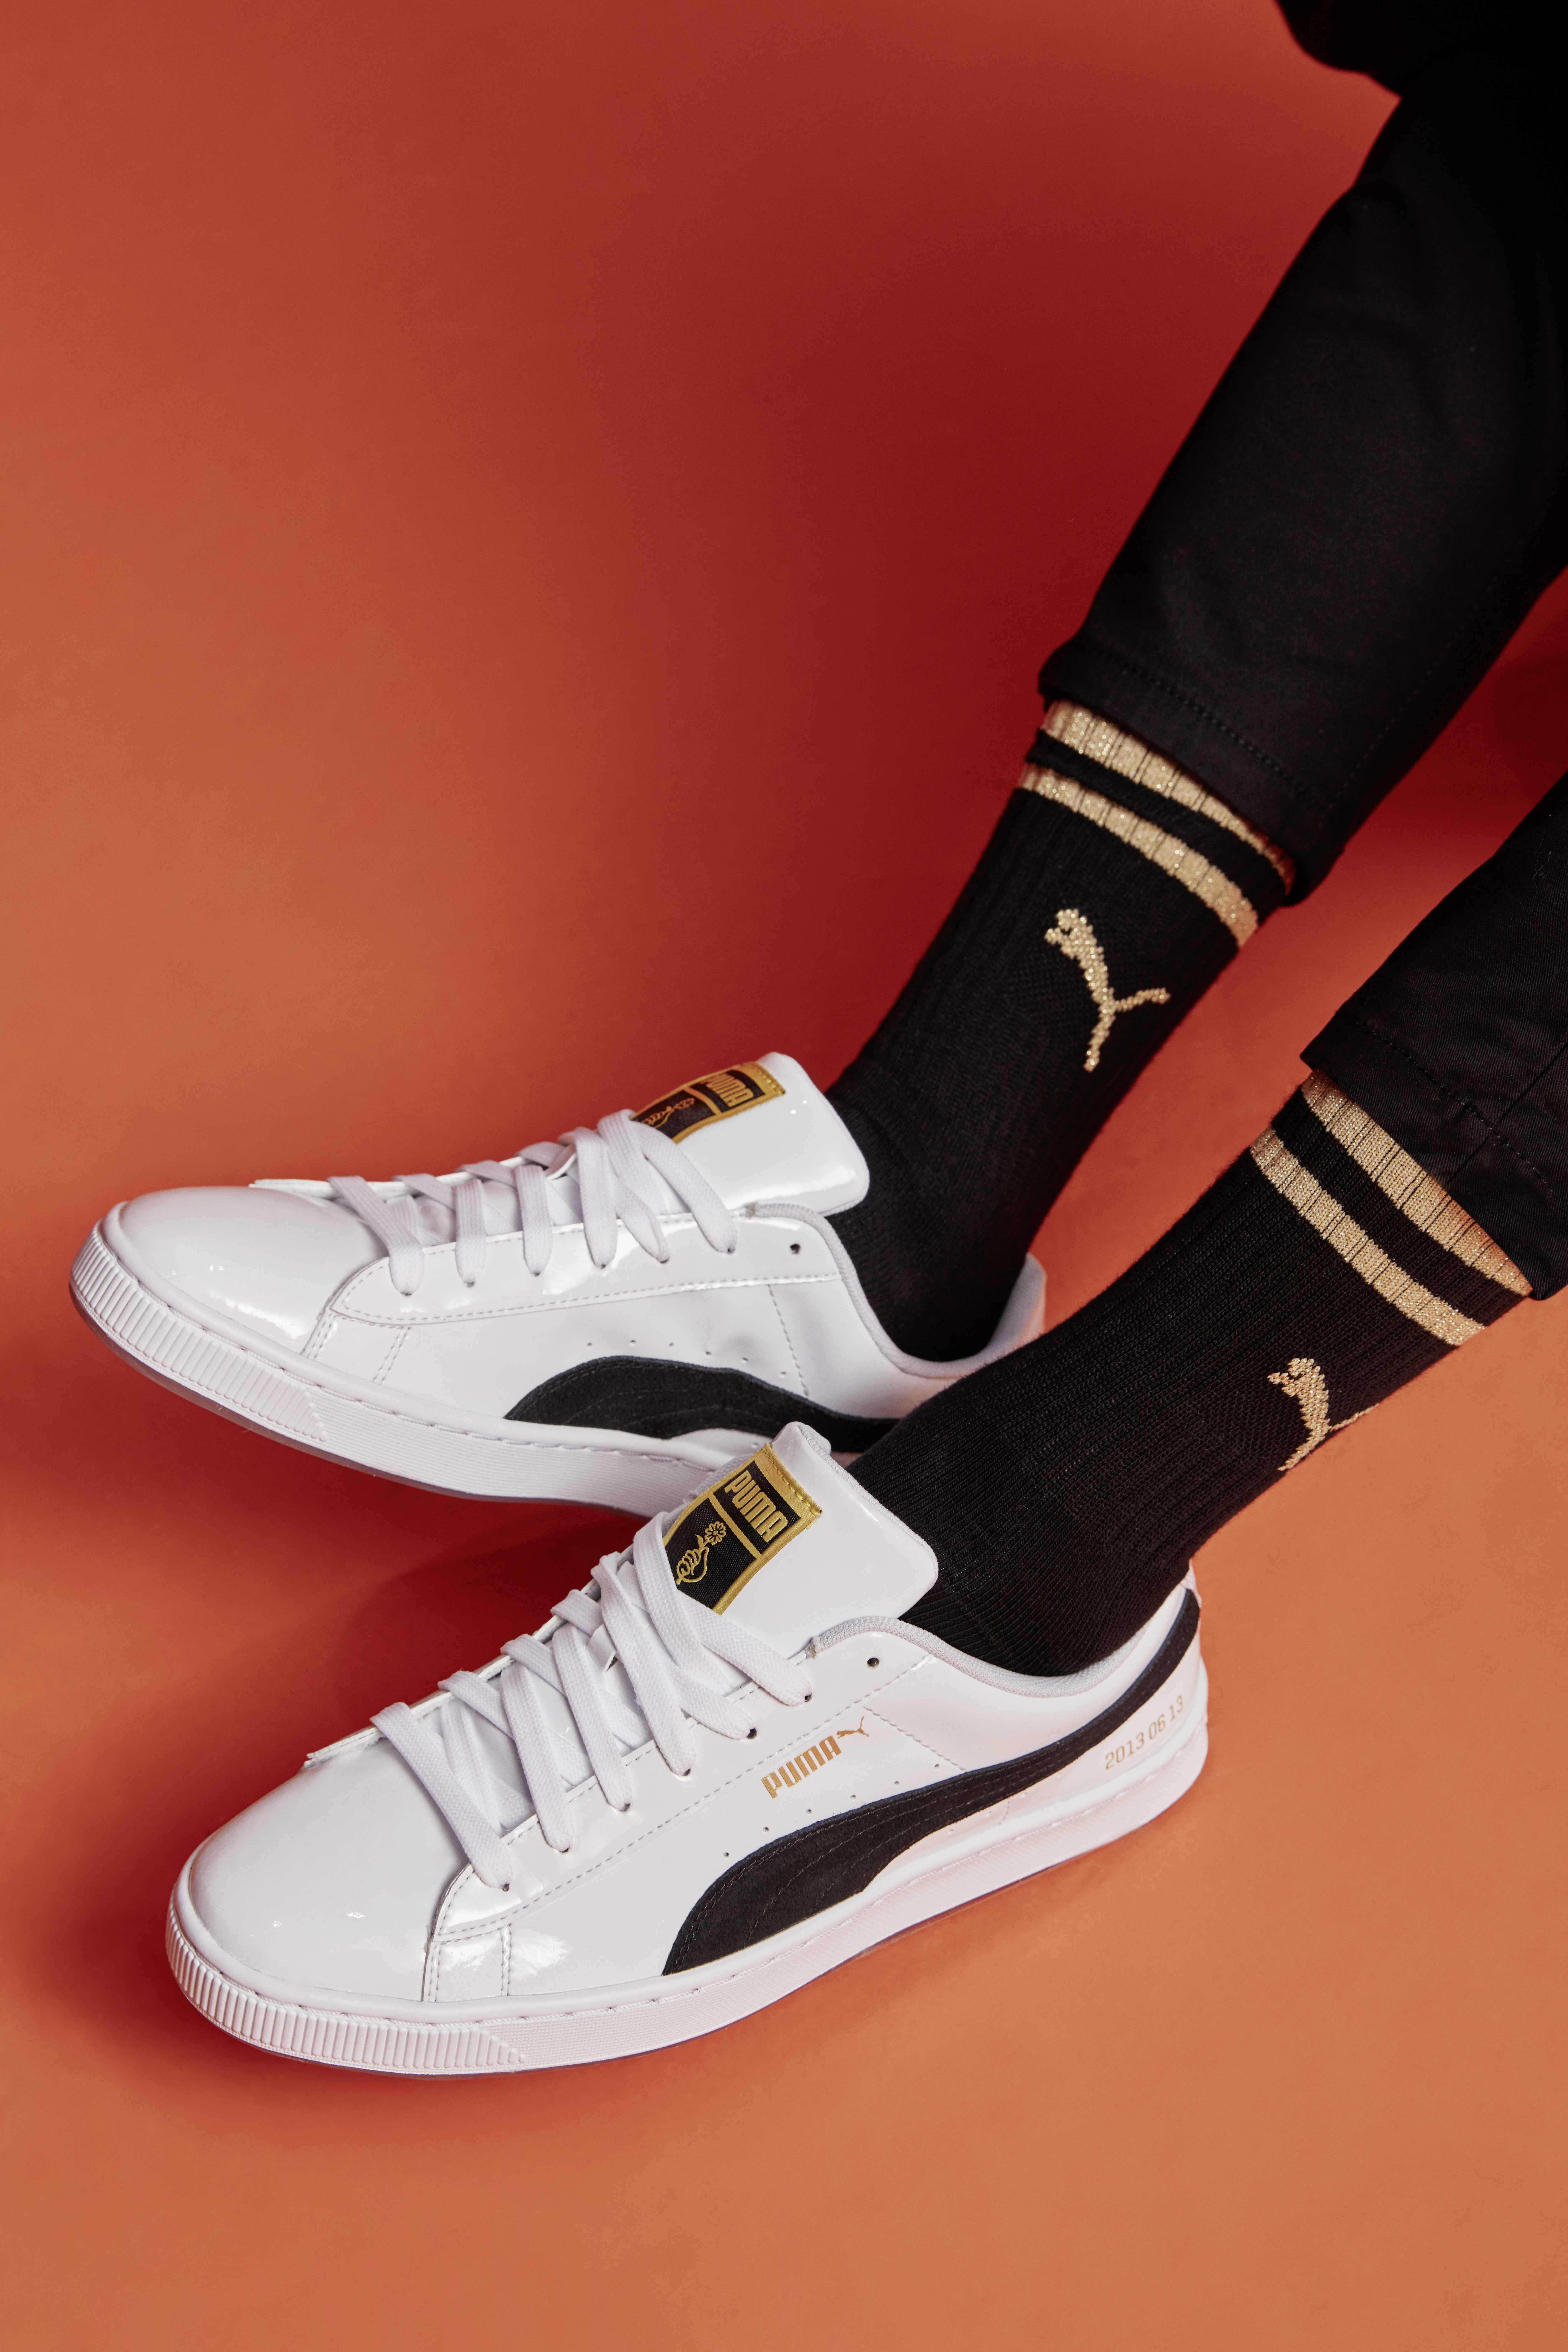 57e8b92739076 PUMA jumps at K-pop fever in new BTS collaboration | Marketing ...